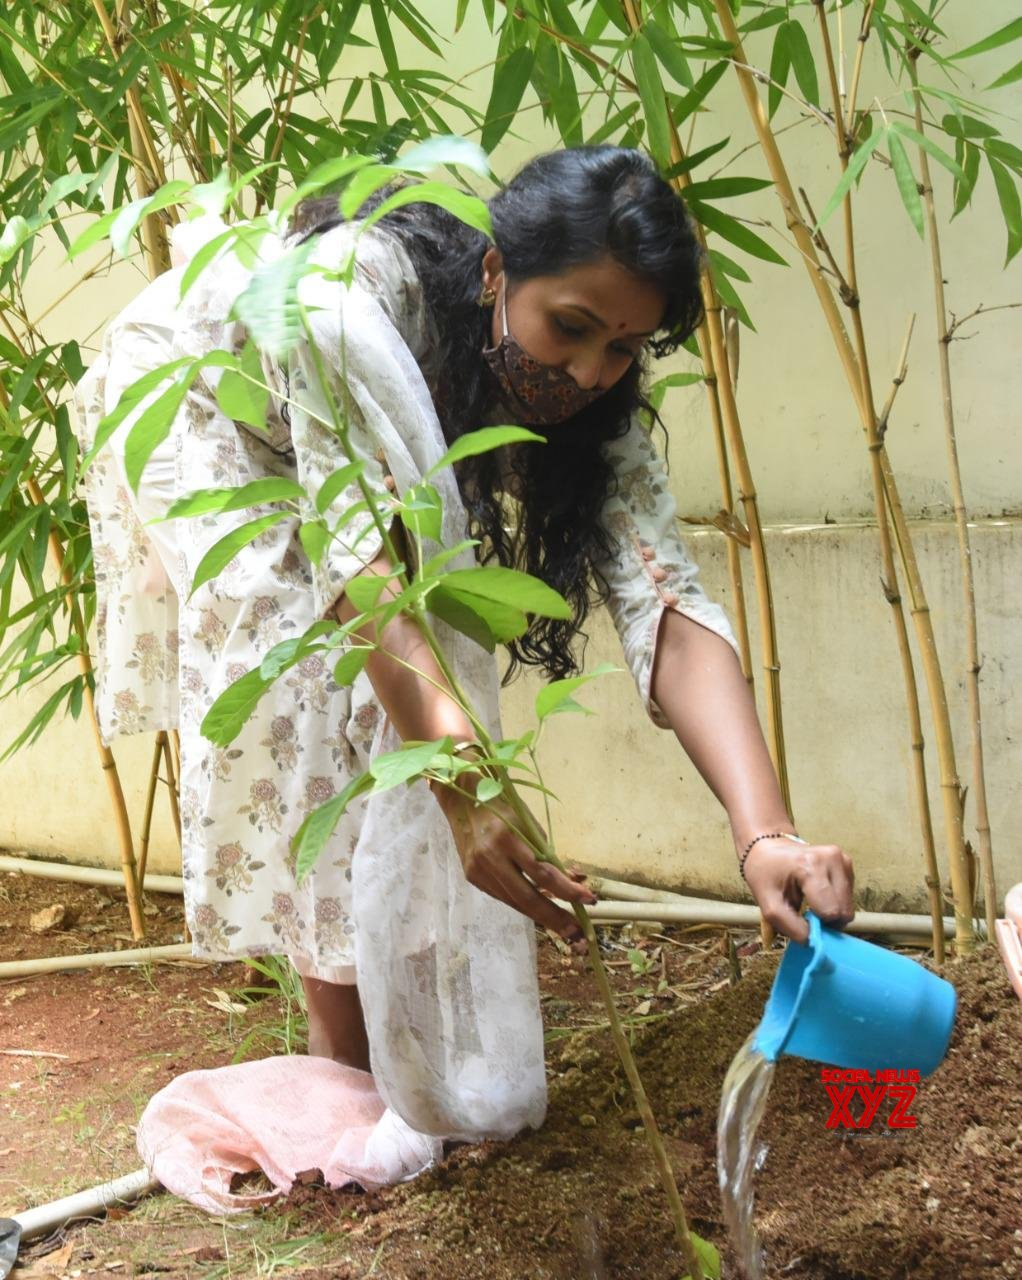 Pop Singer Smita Accepted The Green India Challenge Given By Allari Naresh And Planted Saplings At Her Home